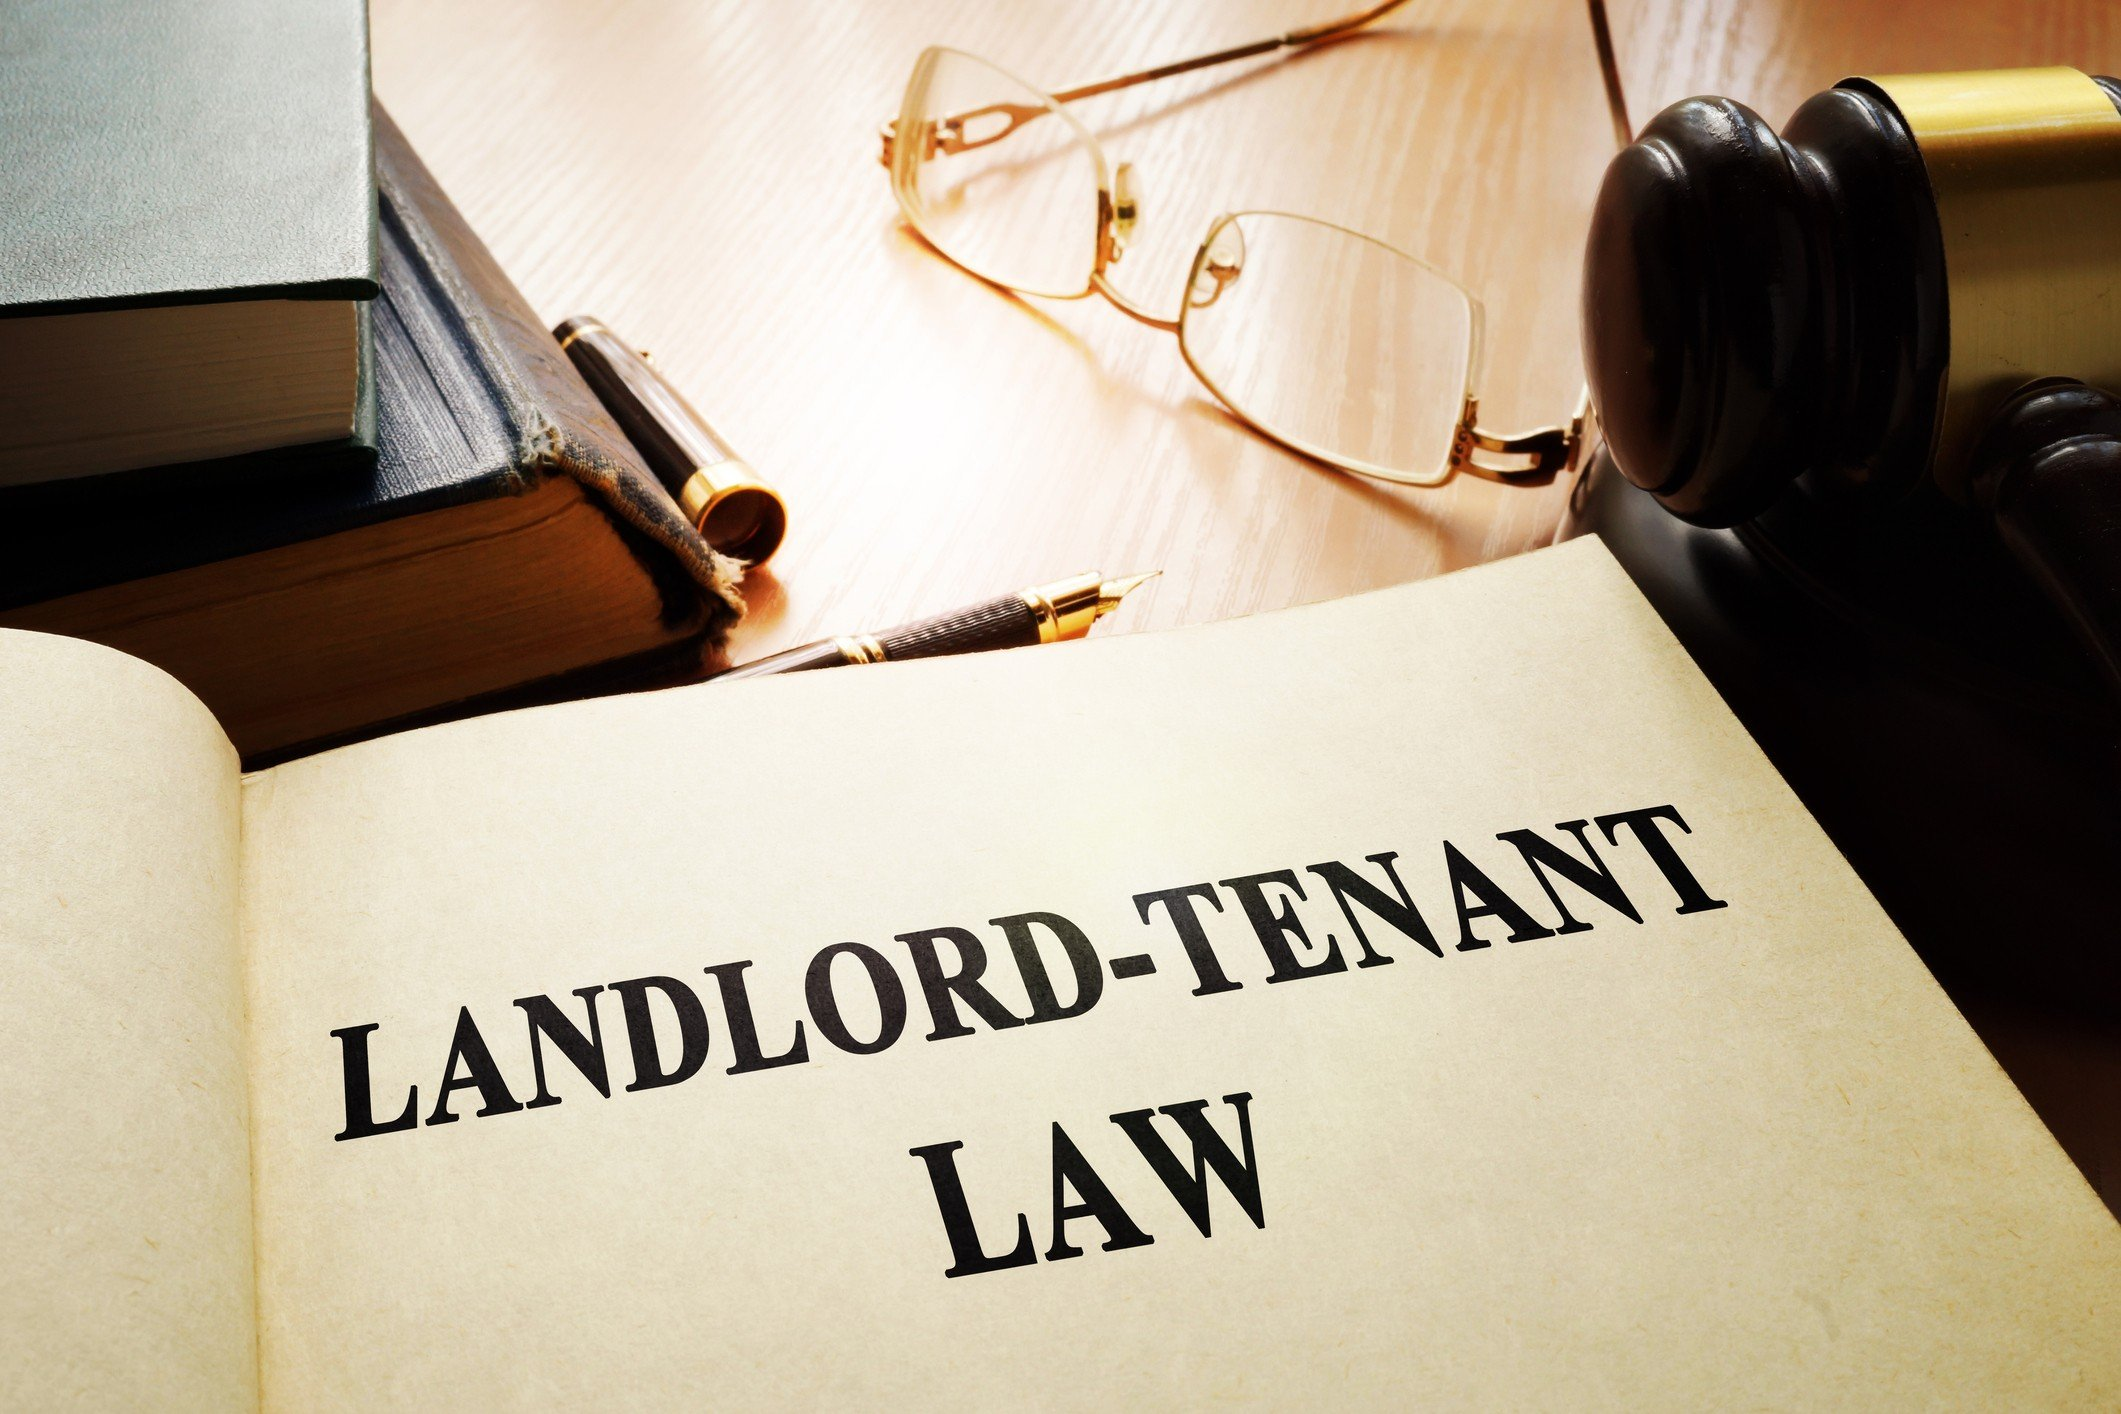 What lockdown means for tenants and landlords